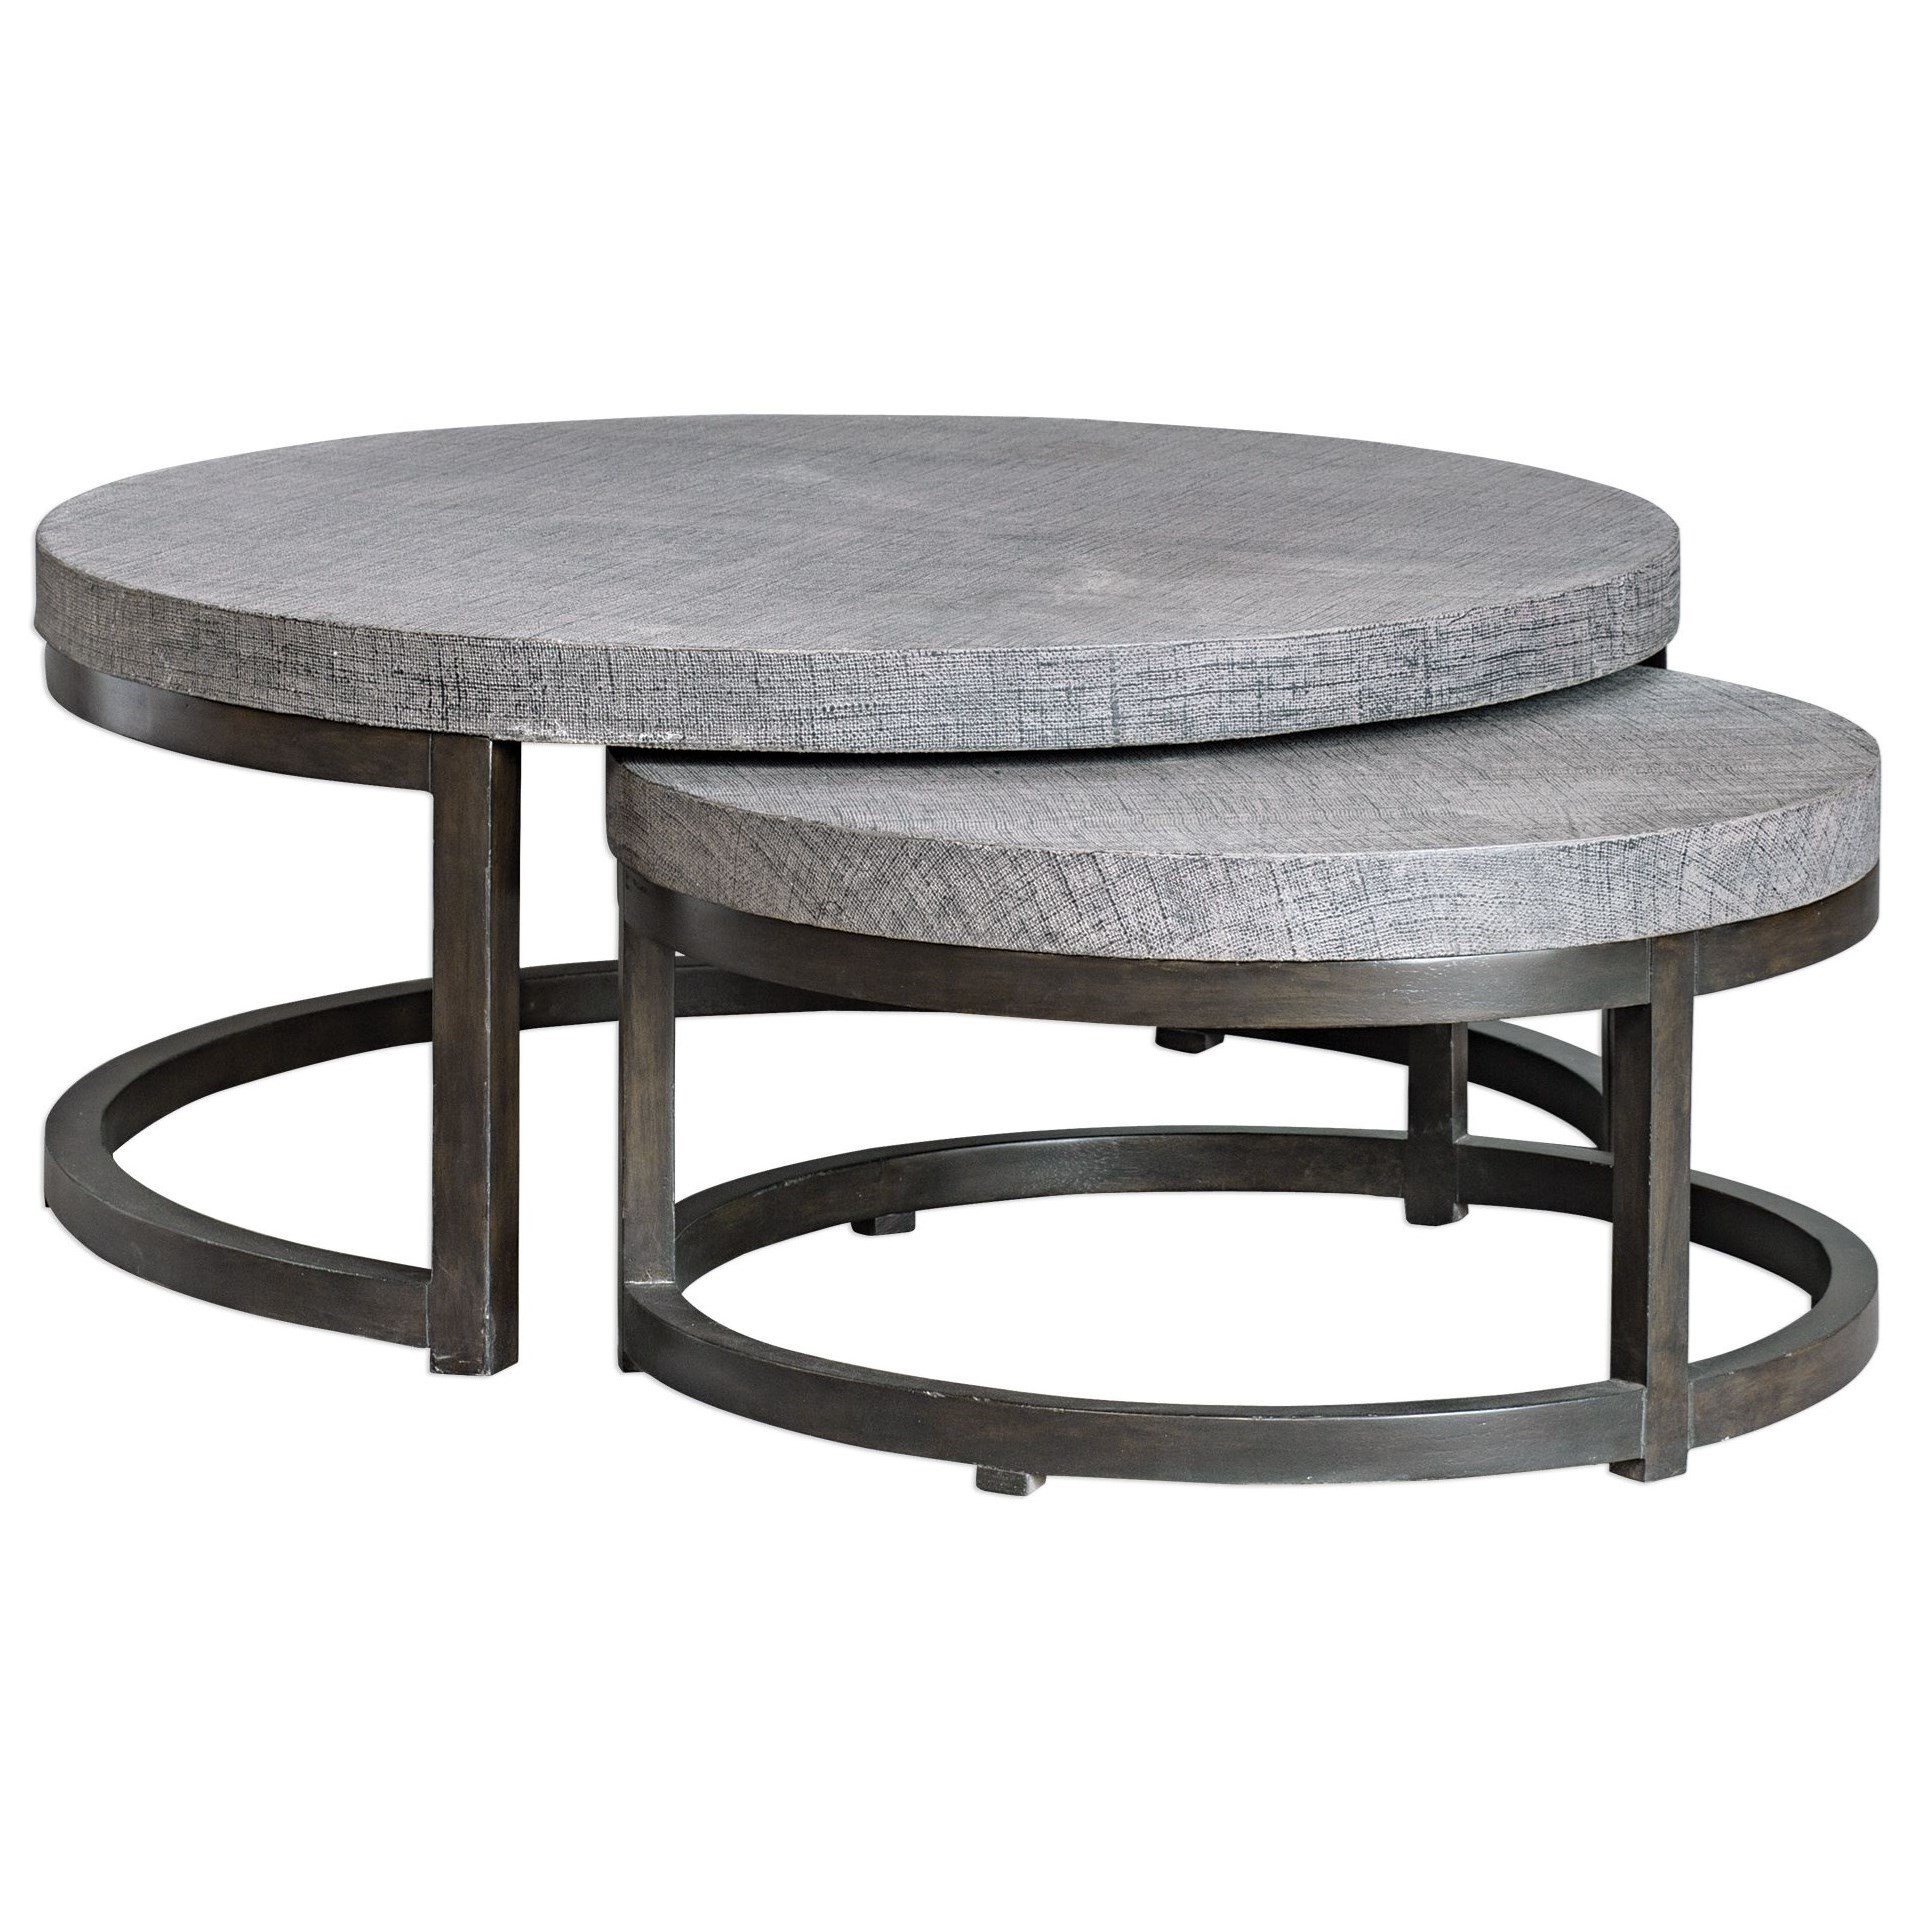 Nesting furniture Stackable Uttermost Accent Furniture Occasional Tablesaiyara Gray Nesting Tables S2 Becker Furniture World Accent Furniture Occasional Tables Set Of Aiyara Gray Nesting